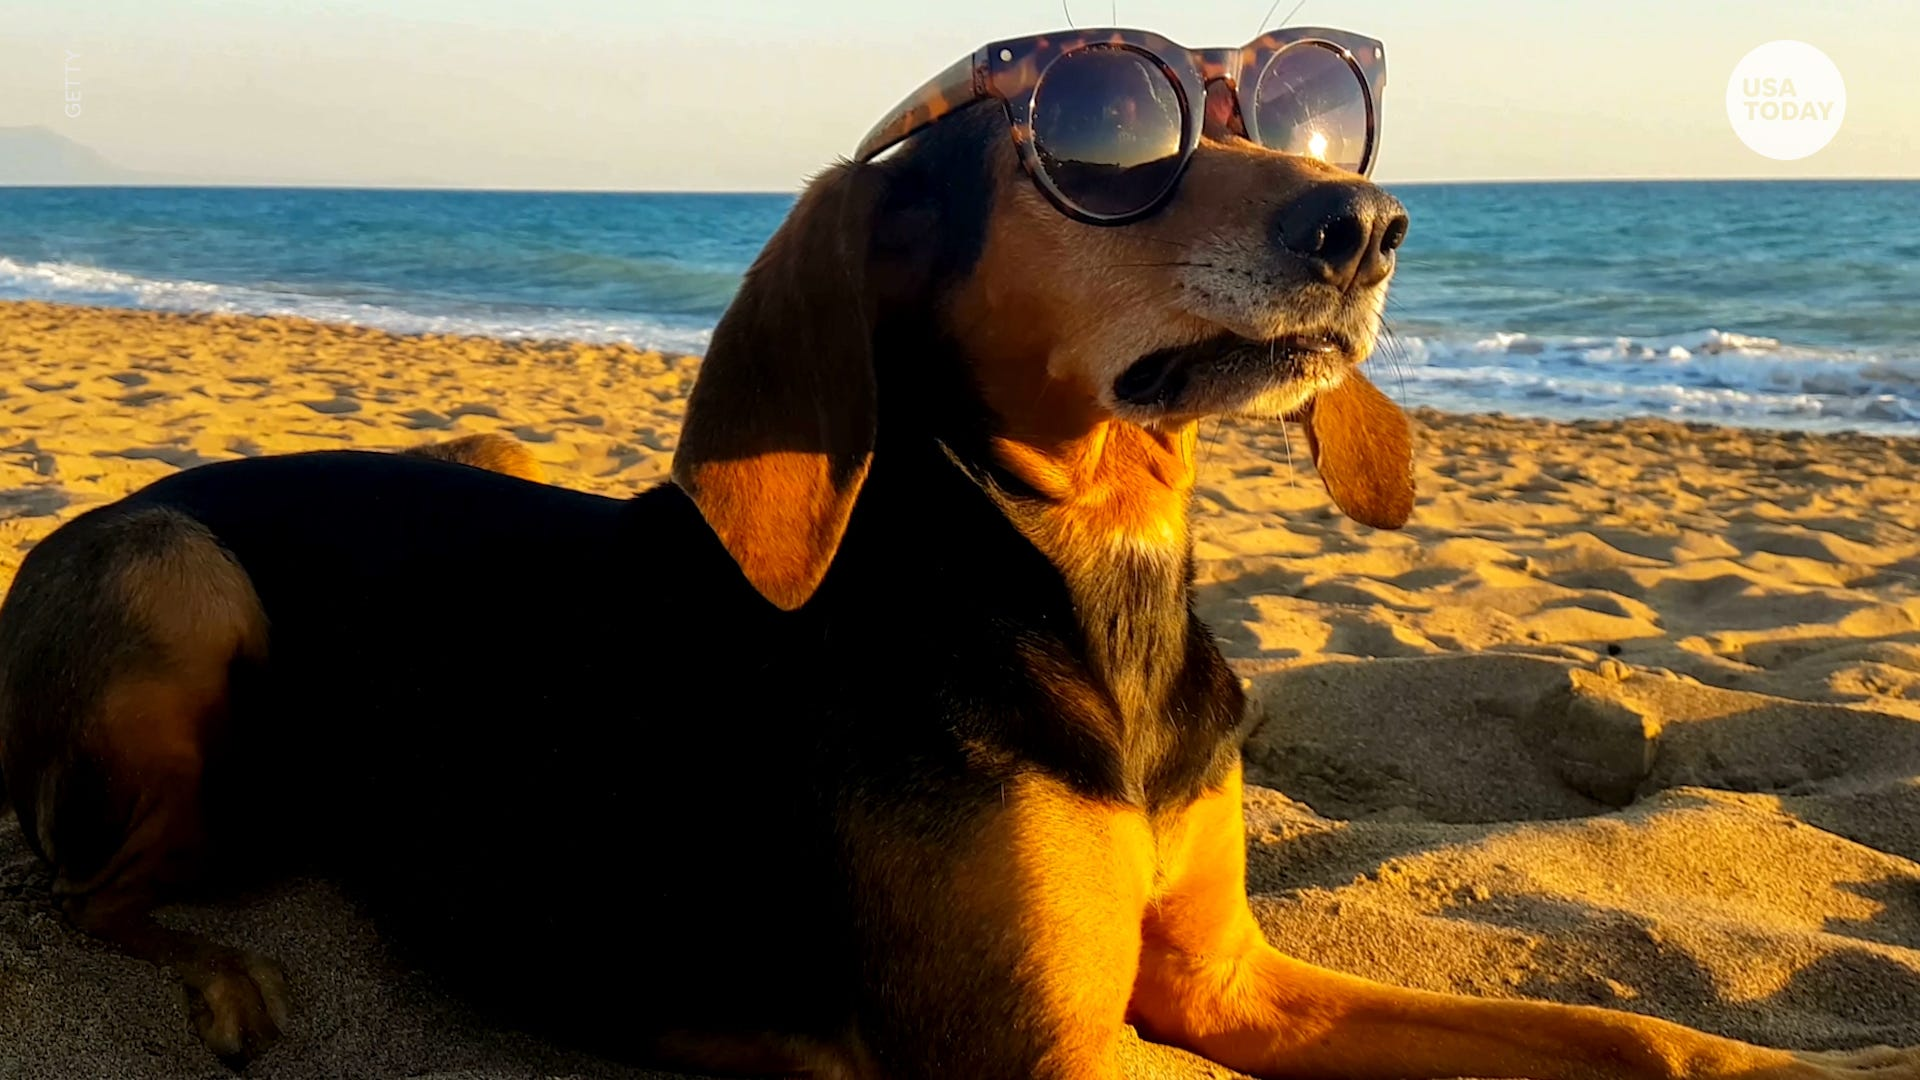 Bring your pets with you on your next adventure with these travel tips